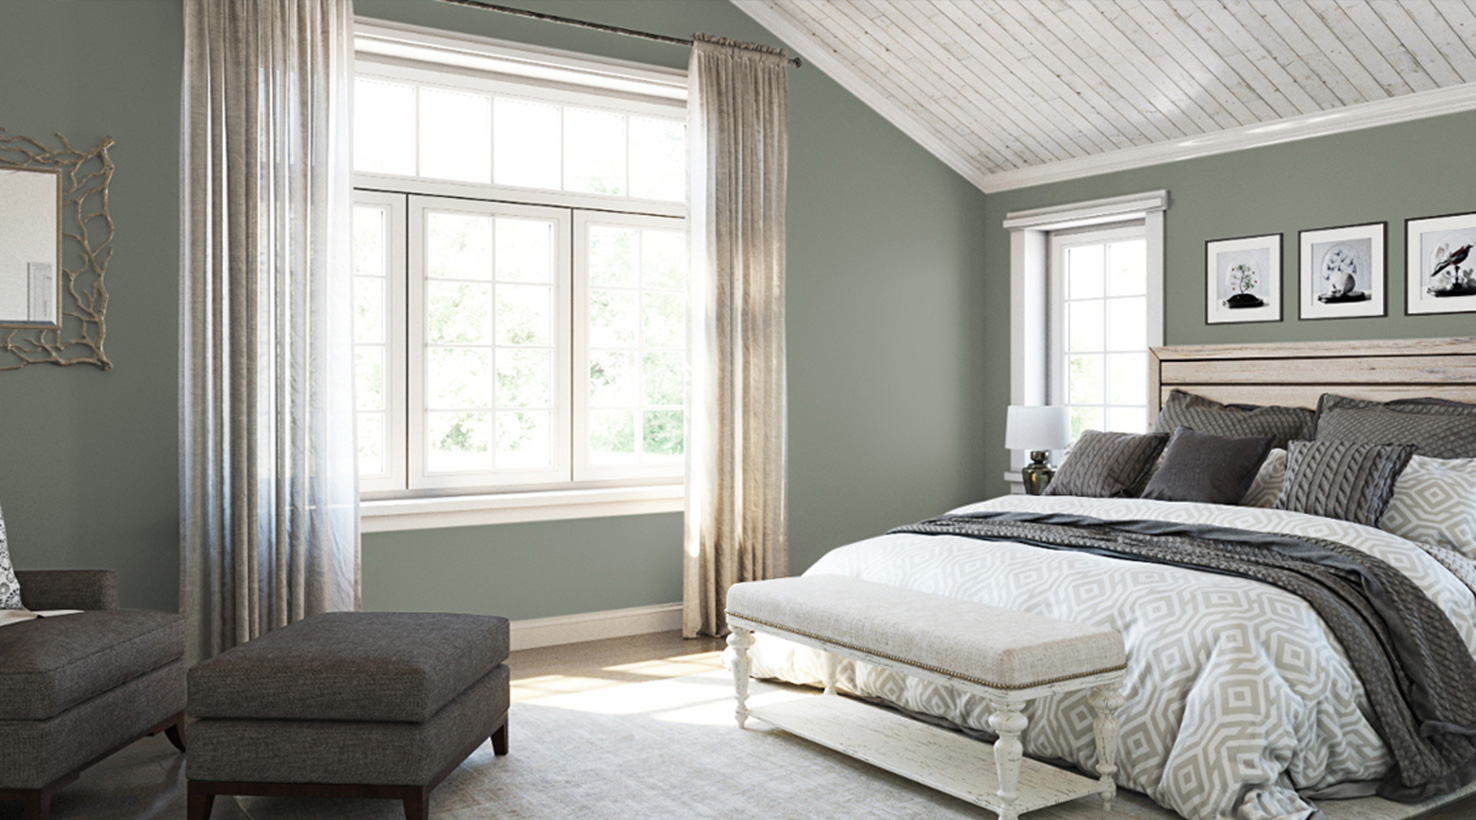 Bedroom Paint Color Ideas  Inspiration Gallery  SherwinWilliams